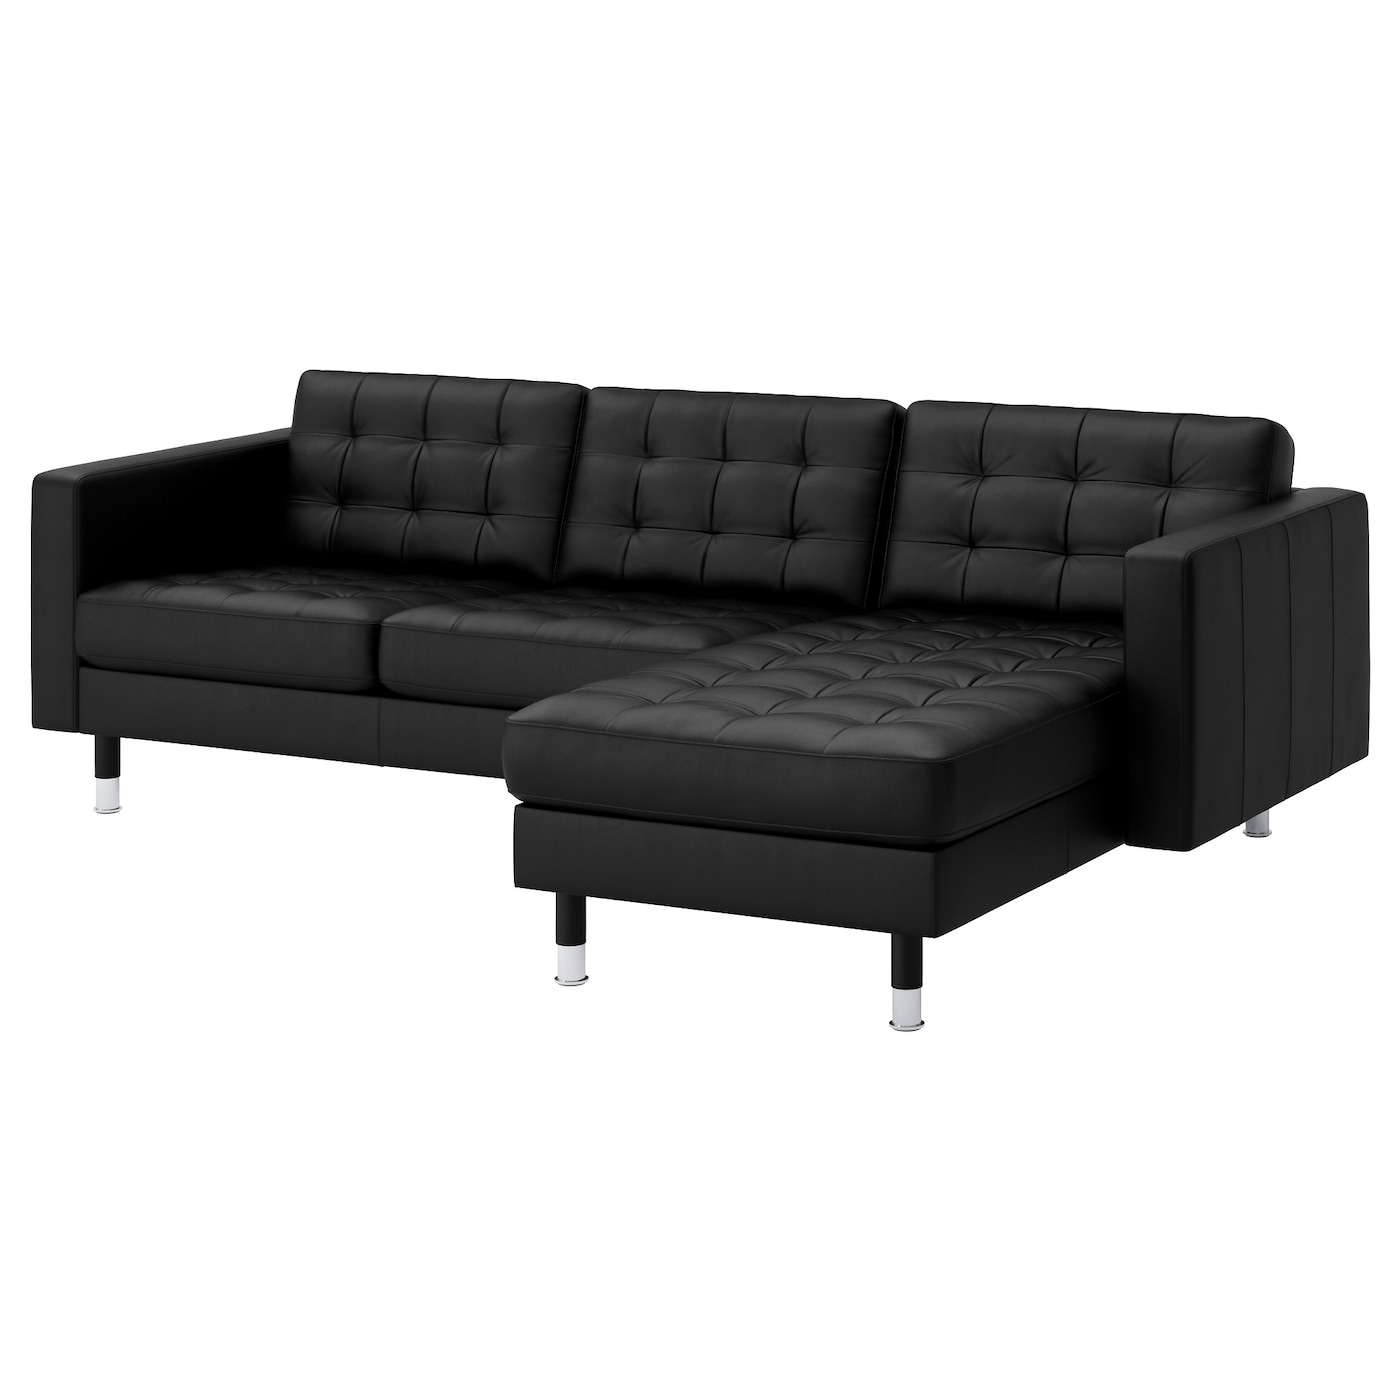 small sofa 2 seater sofa ikea. Black Bedroom Furniture Sets. Home Design Ideas